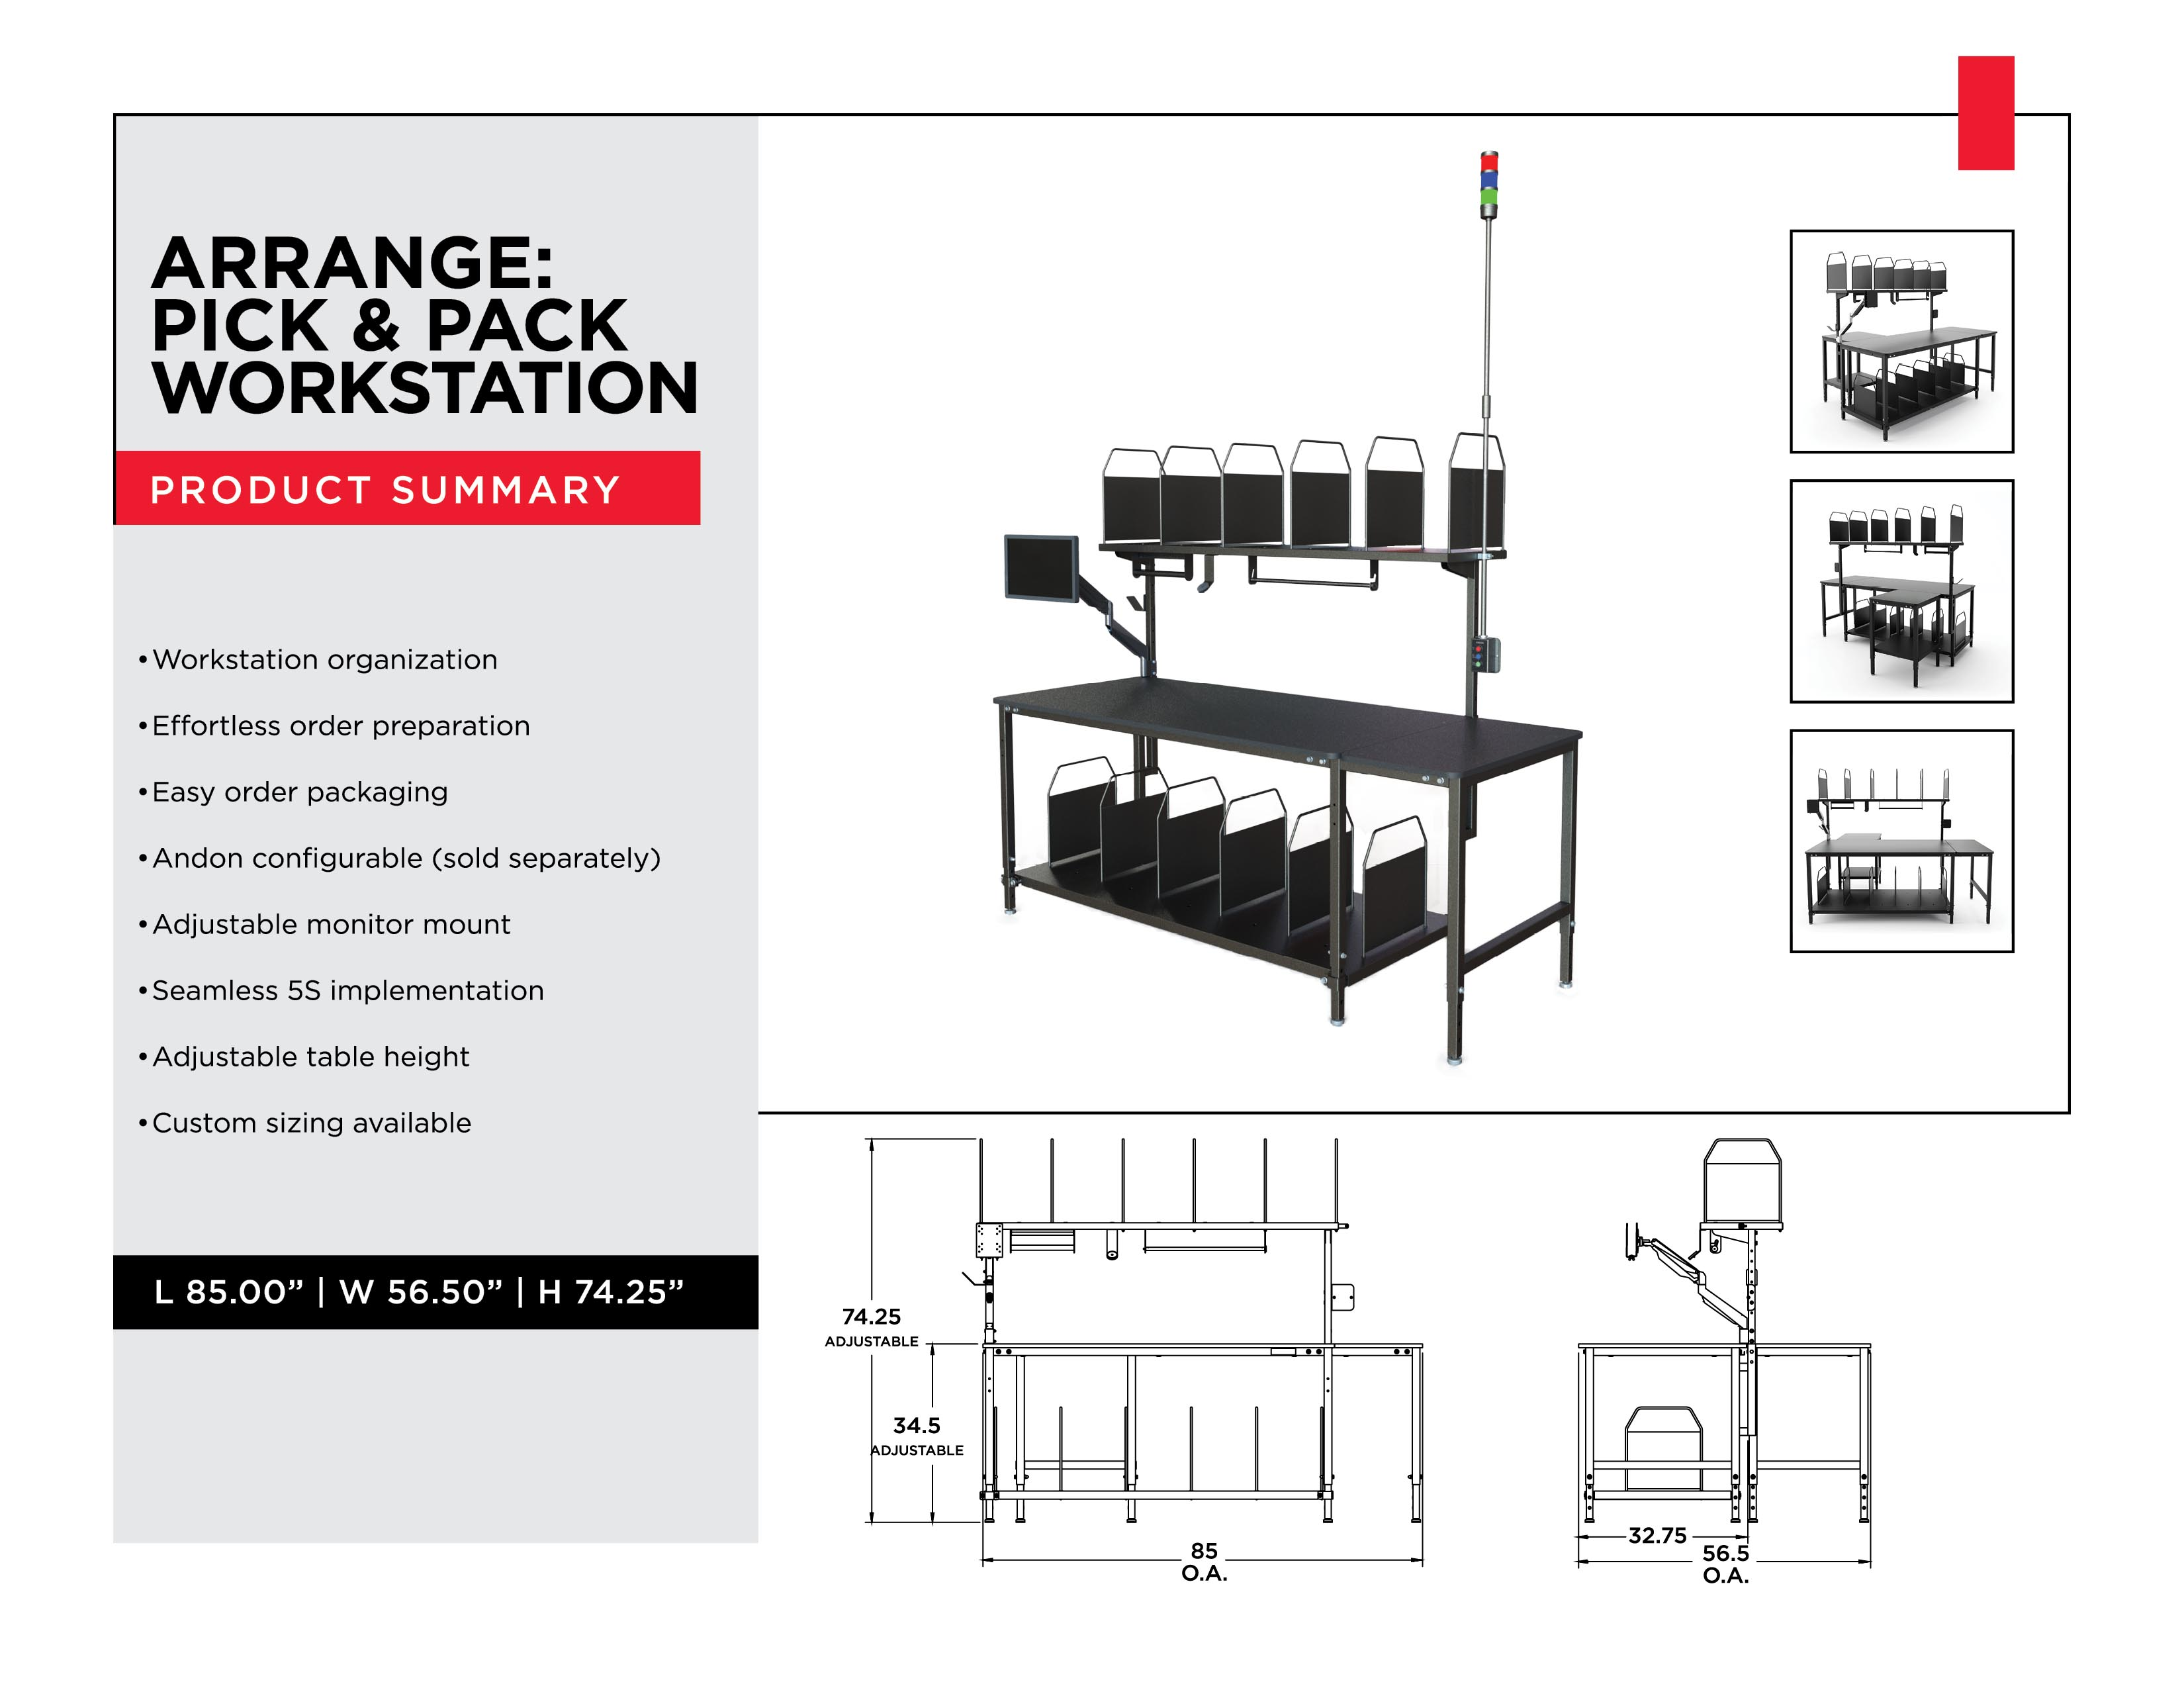 Shipping Workstation for Shipping and Handling